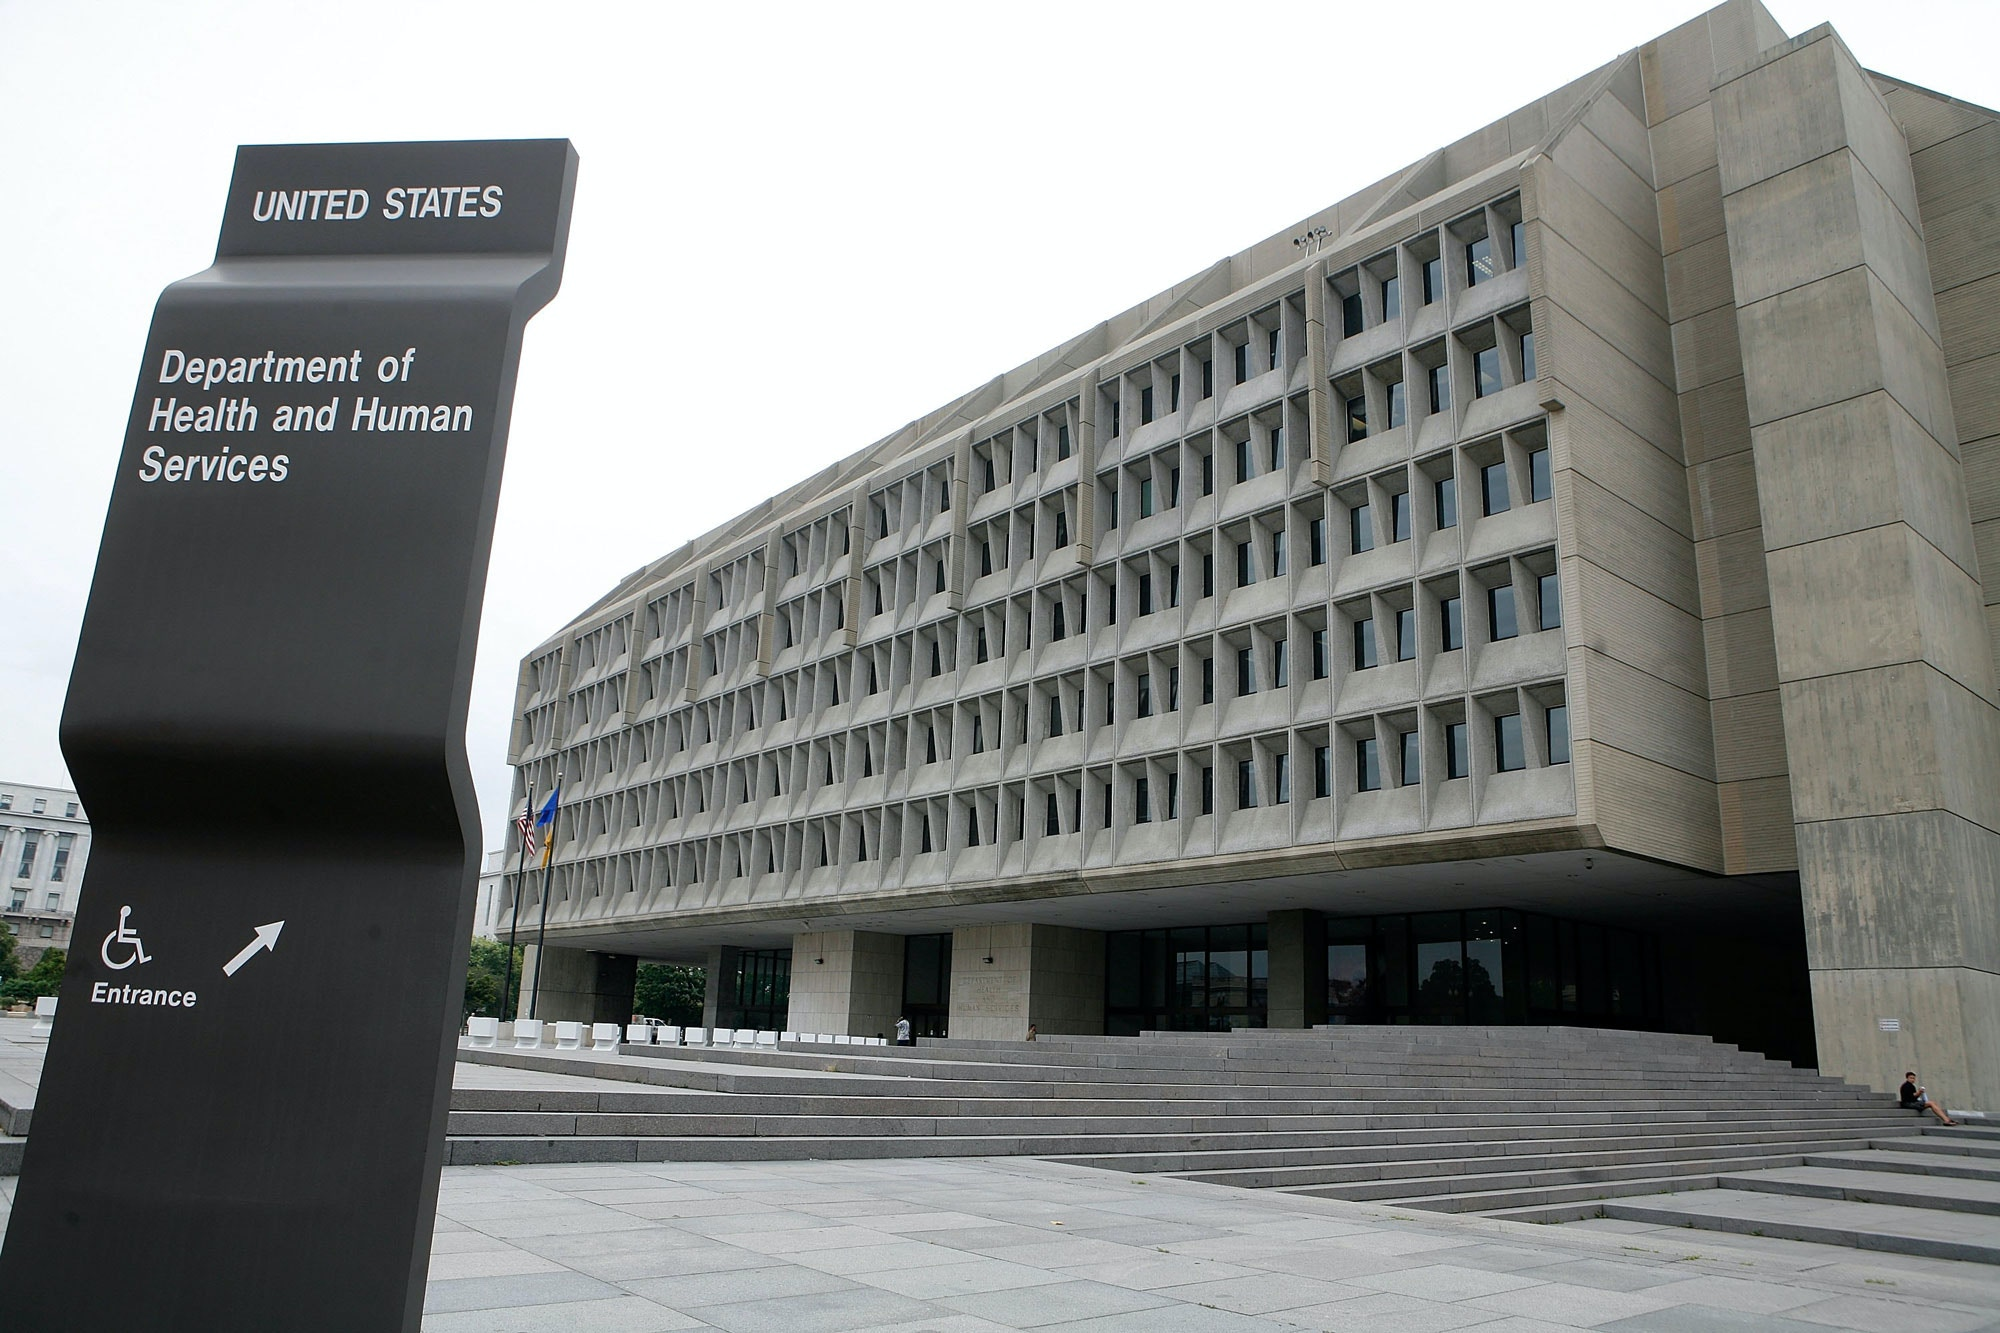 WASHINGTON - AUGUST 15:  The exterior of the U.S. Department of Health and Human Services is seen August 15, 2006 in Washington, DC.   (Photo by Alex Wong/Getty Images)